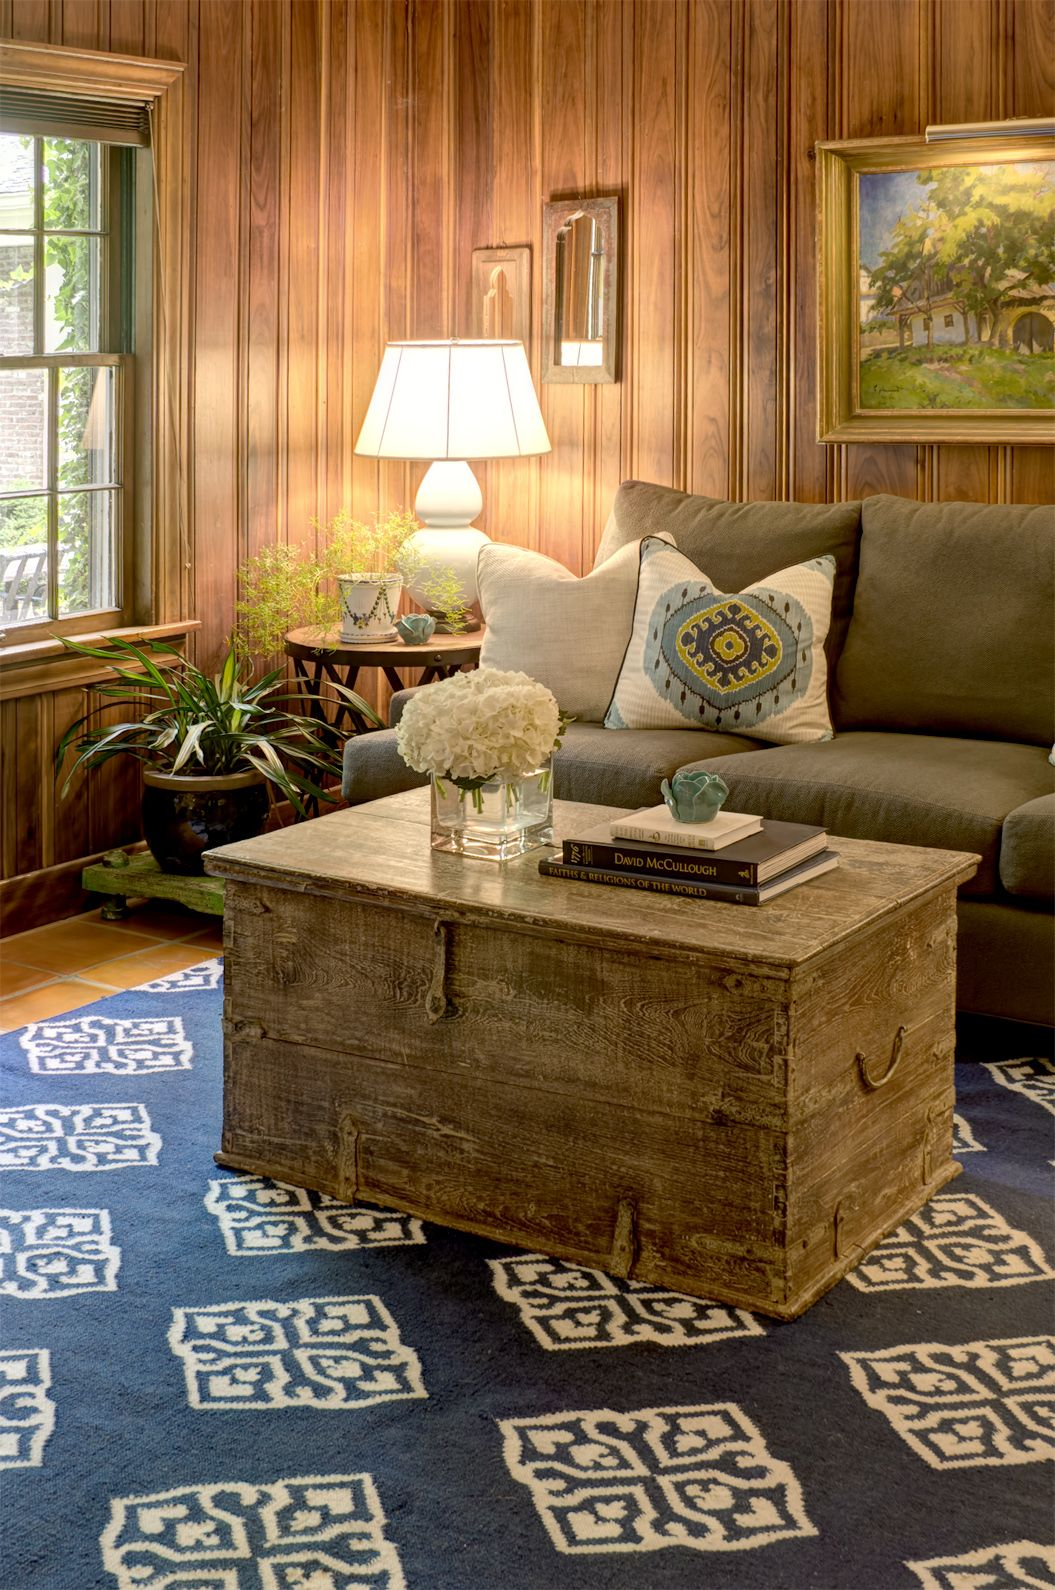 Beautiful Wood Paneled Rooms: An Old Trunk Anchors This Setting Within A Gorgeous Wood